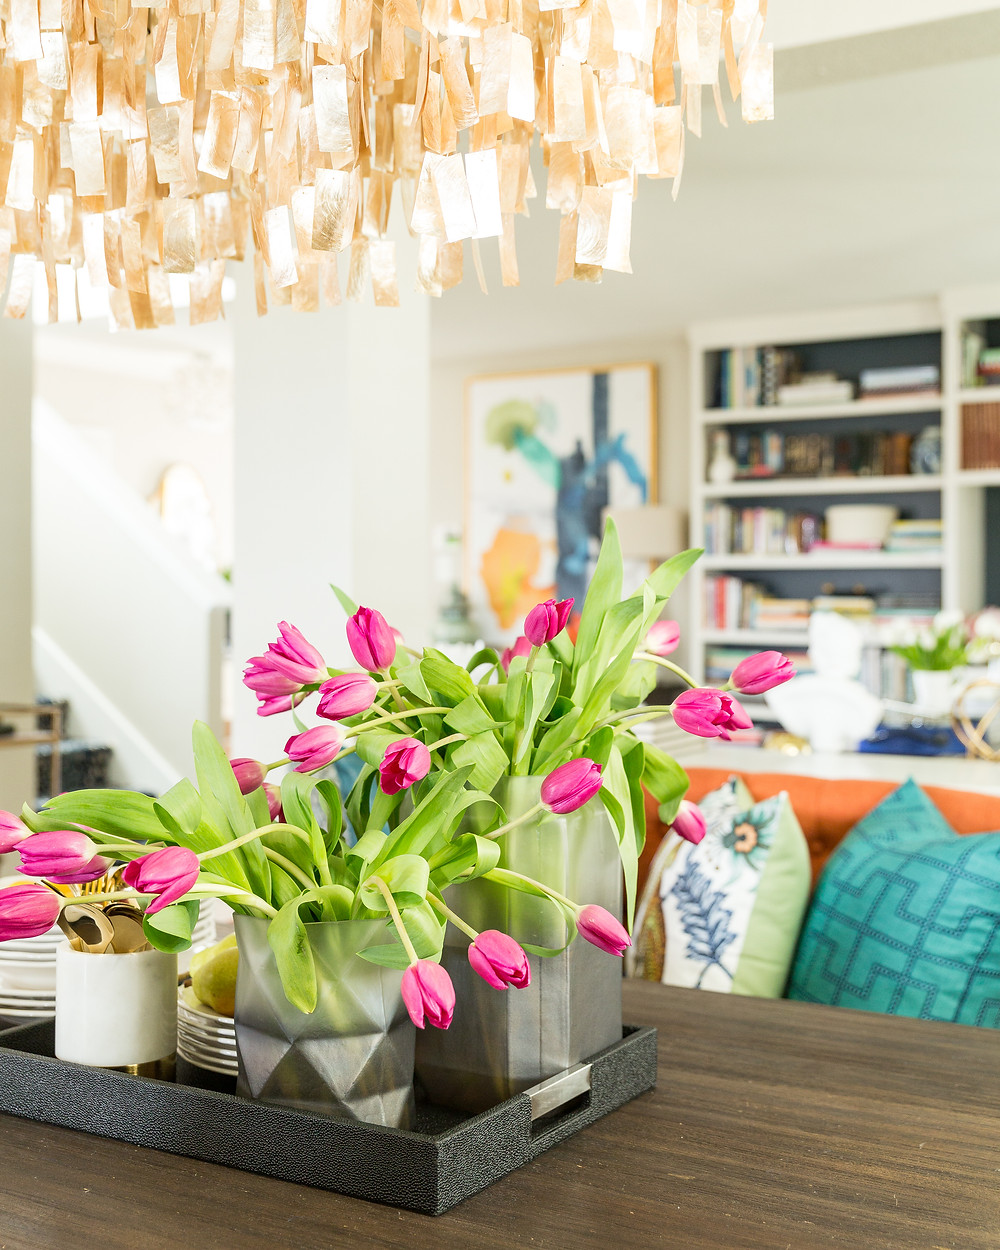 Dining Room With Fuchsia Tulips On Table Top